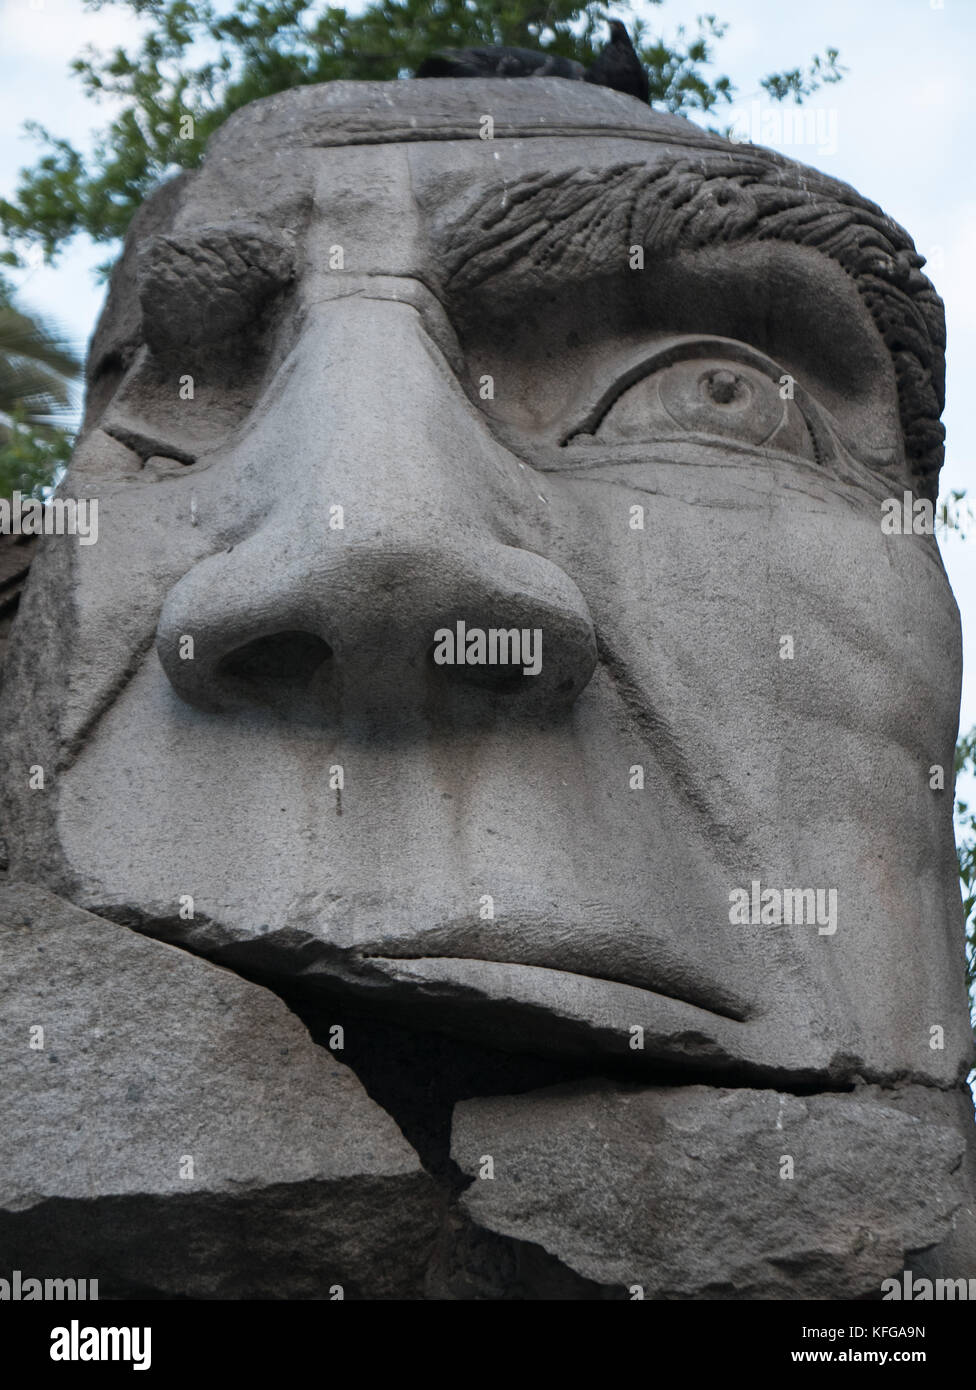 Famous statue located in the Plaza de Armas area of Santiago, Chile. Close-up of head of statue show man's face - Stock Image